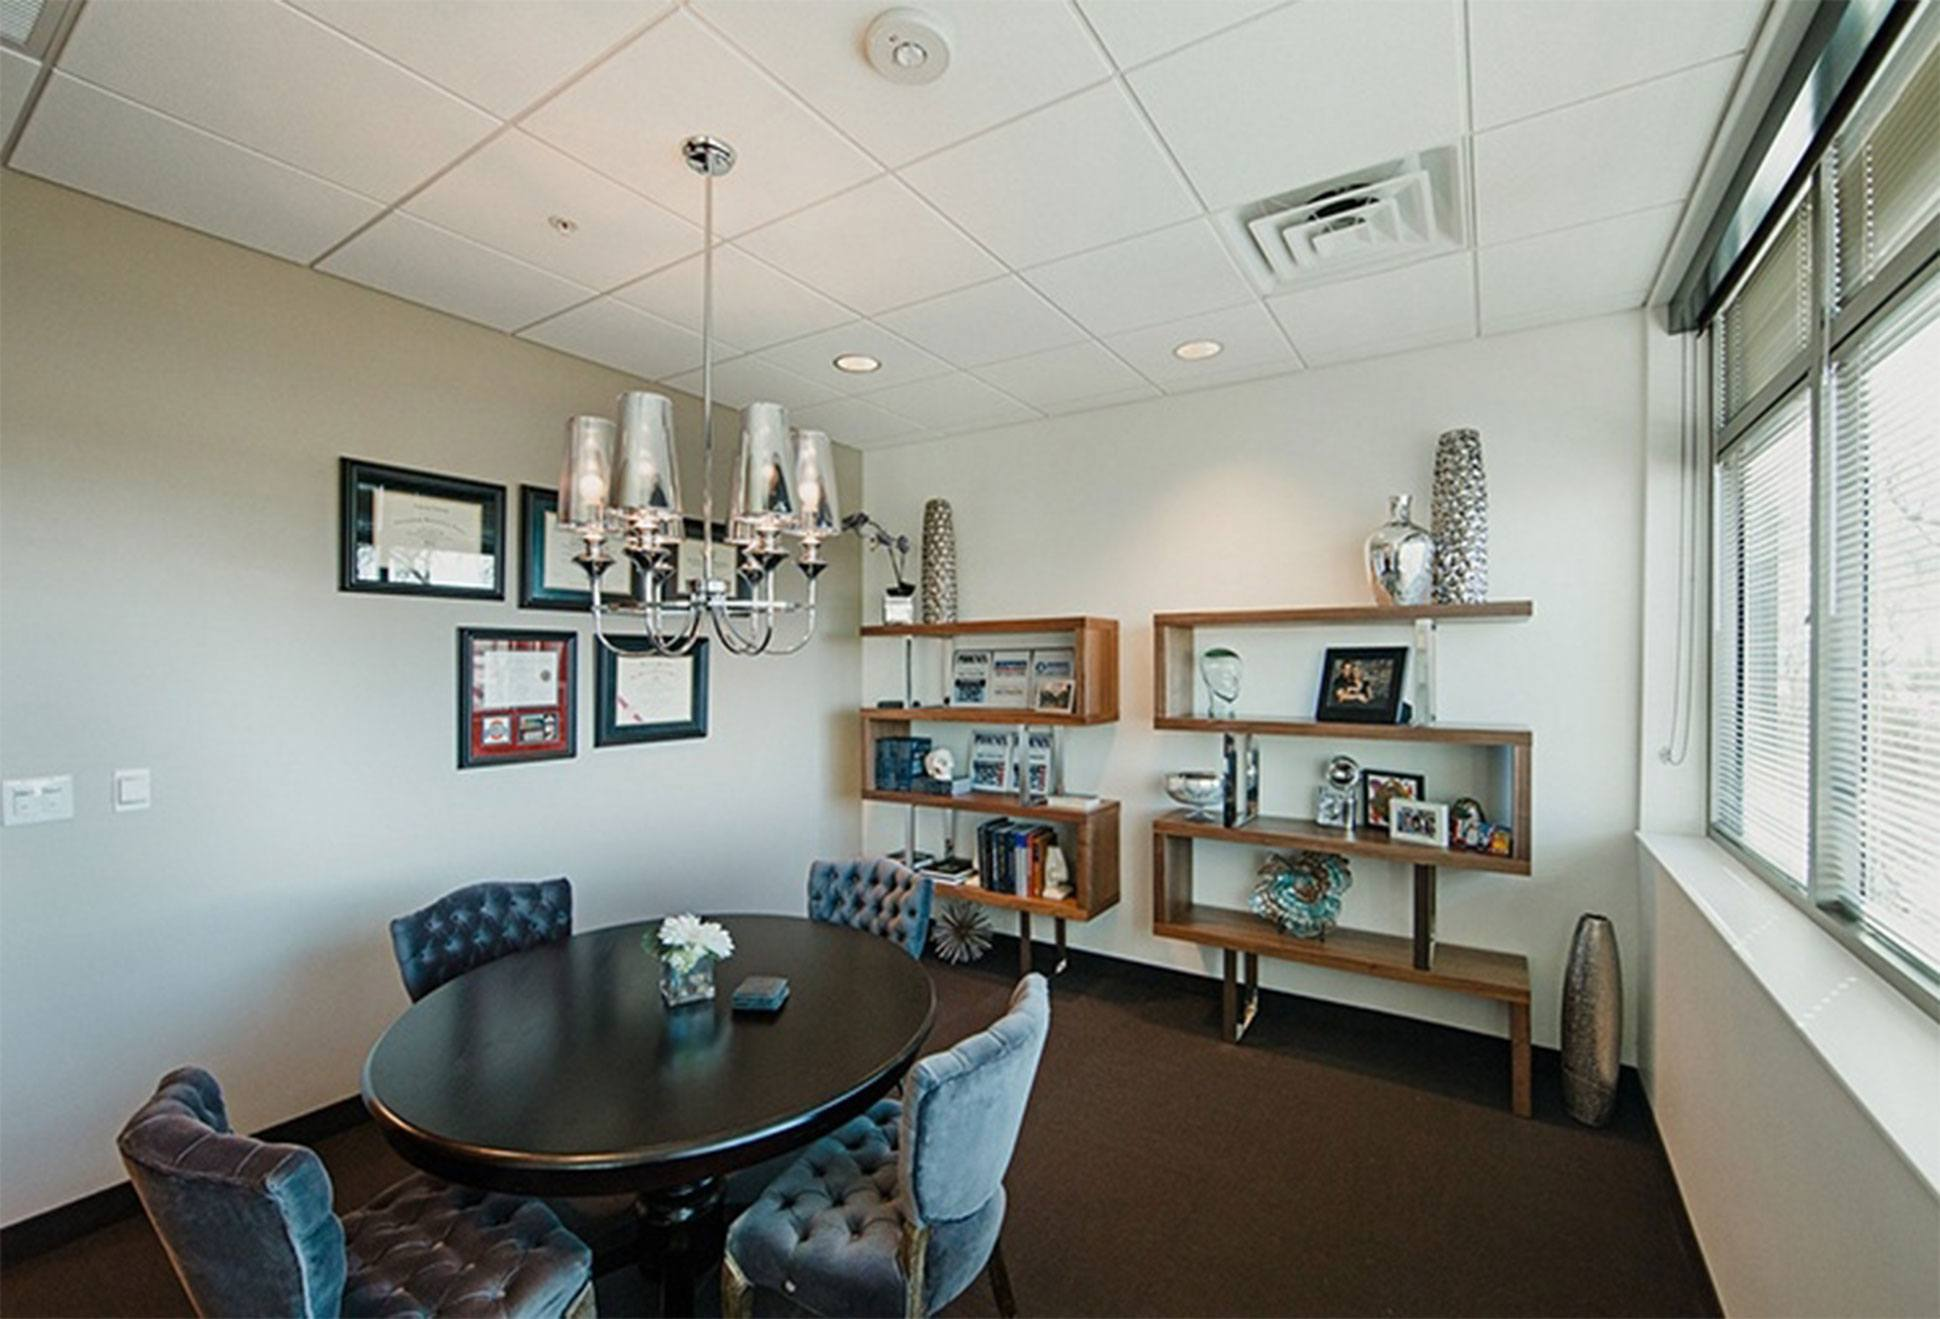 Hobgood Facial Plastic Surgery Meeting Room in Scottsdale